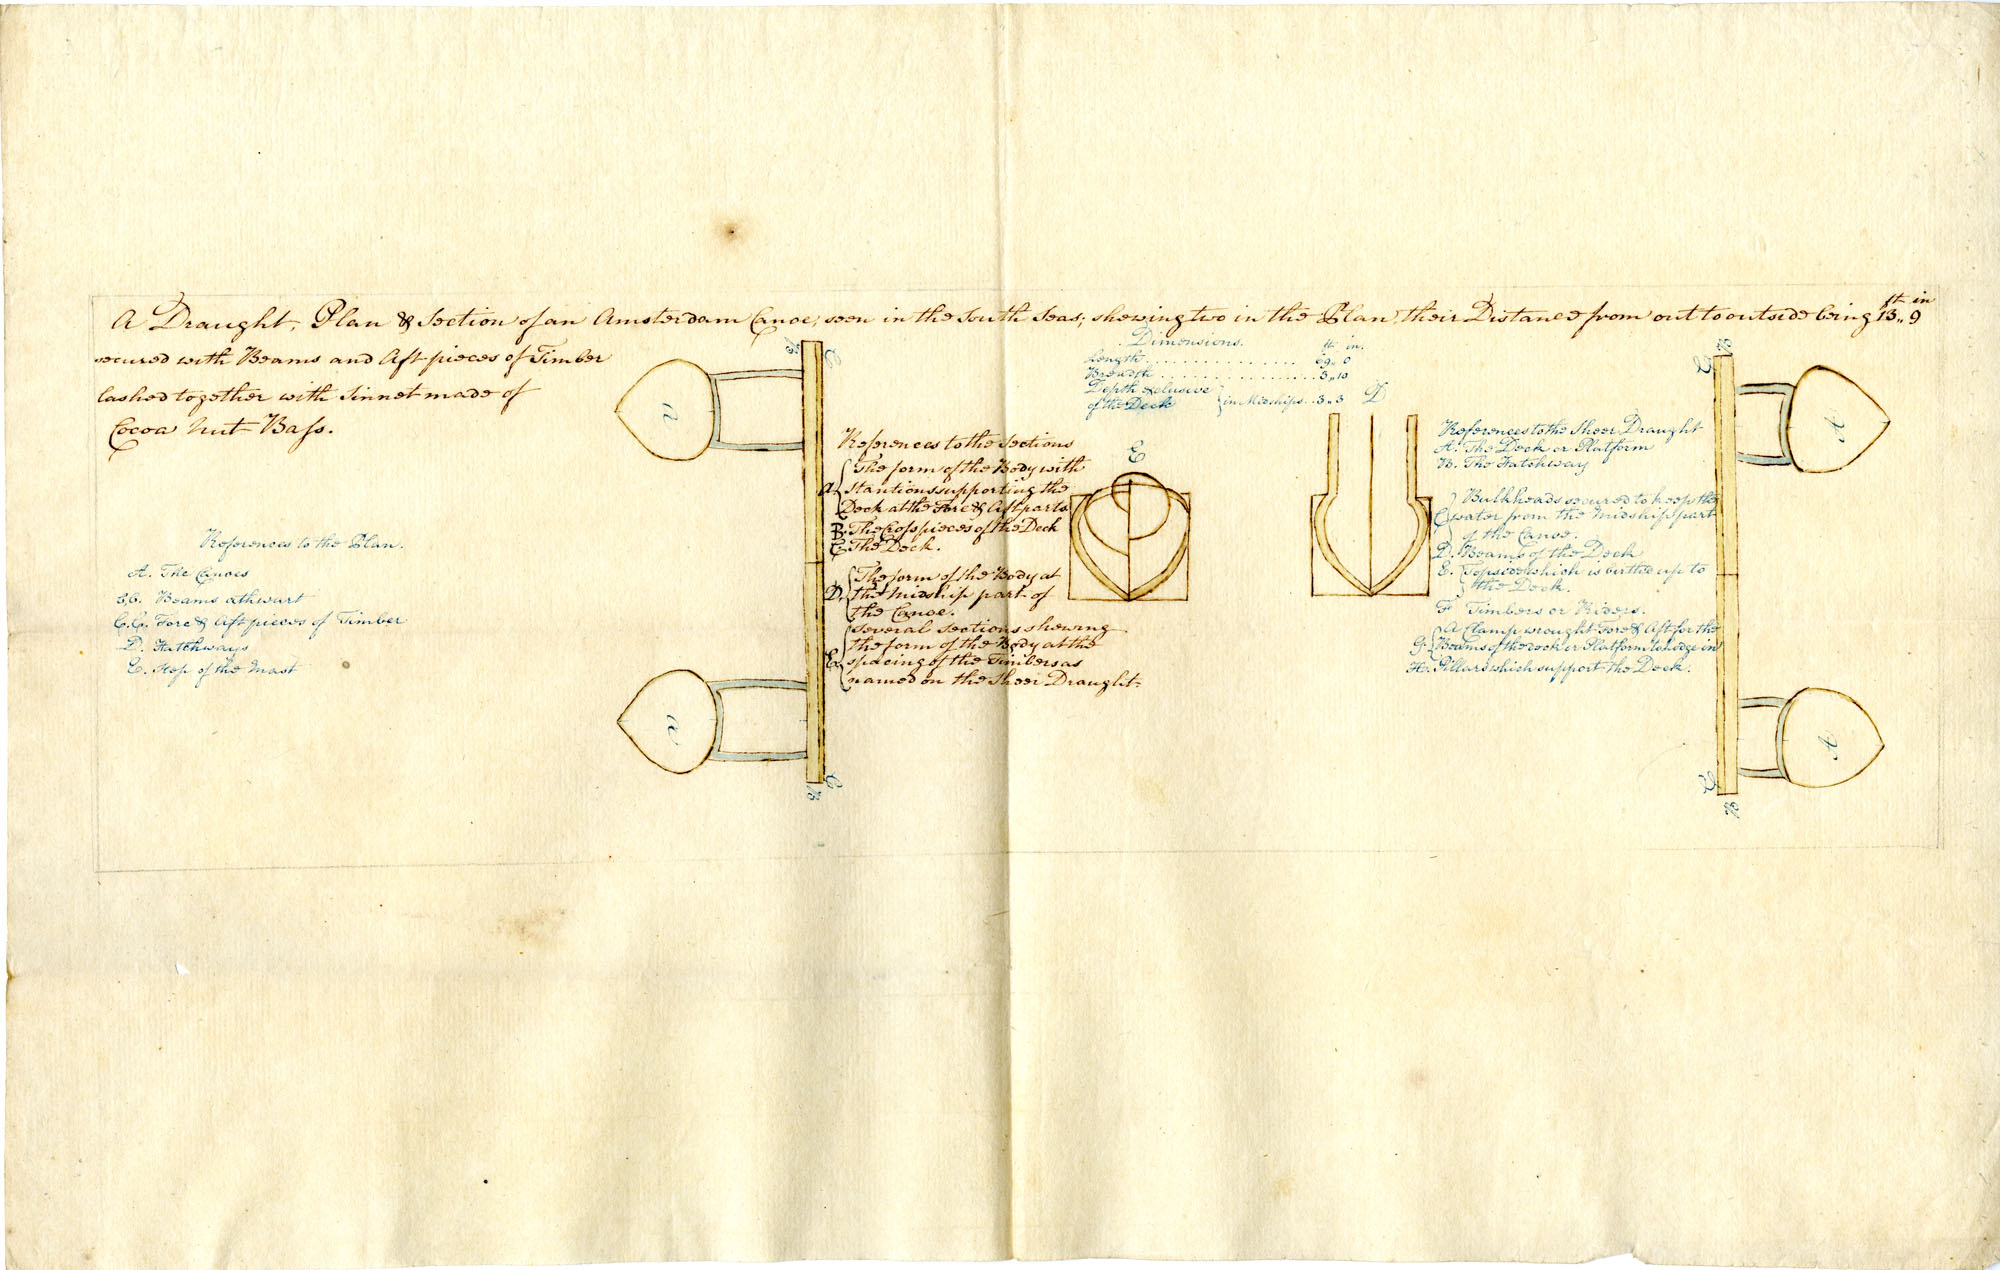 A Draught Plan & Section of an Amsterdam Canoe, soon in the South seas showing two in the plan, their distance from out to outside being 13 ft. 9 in.